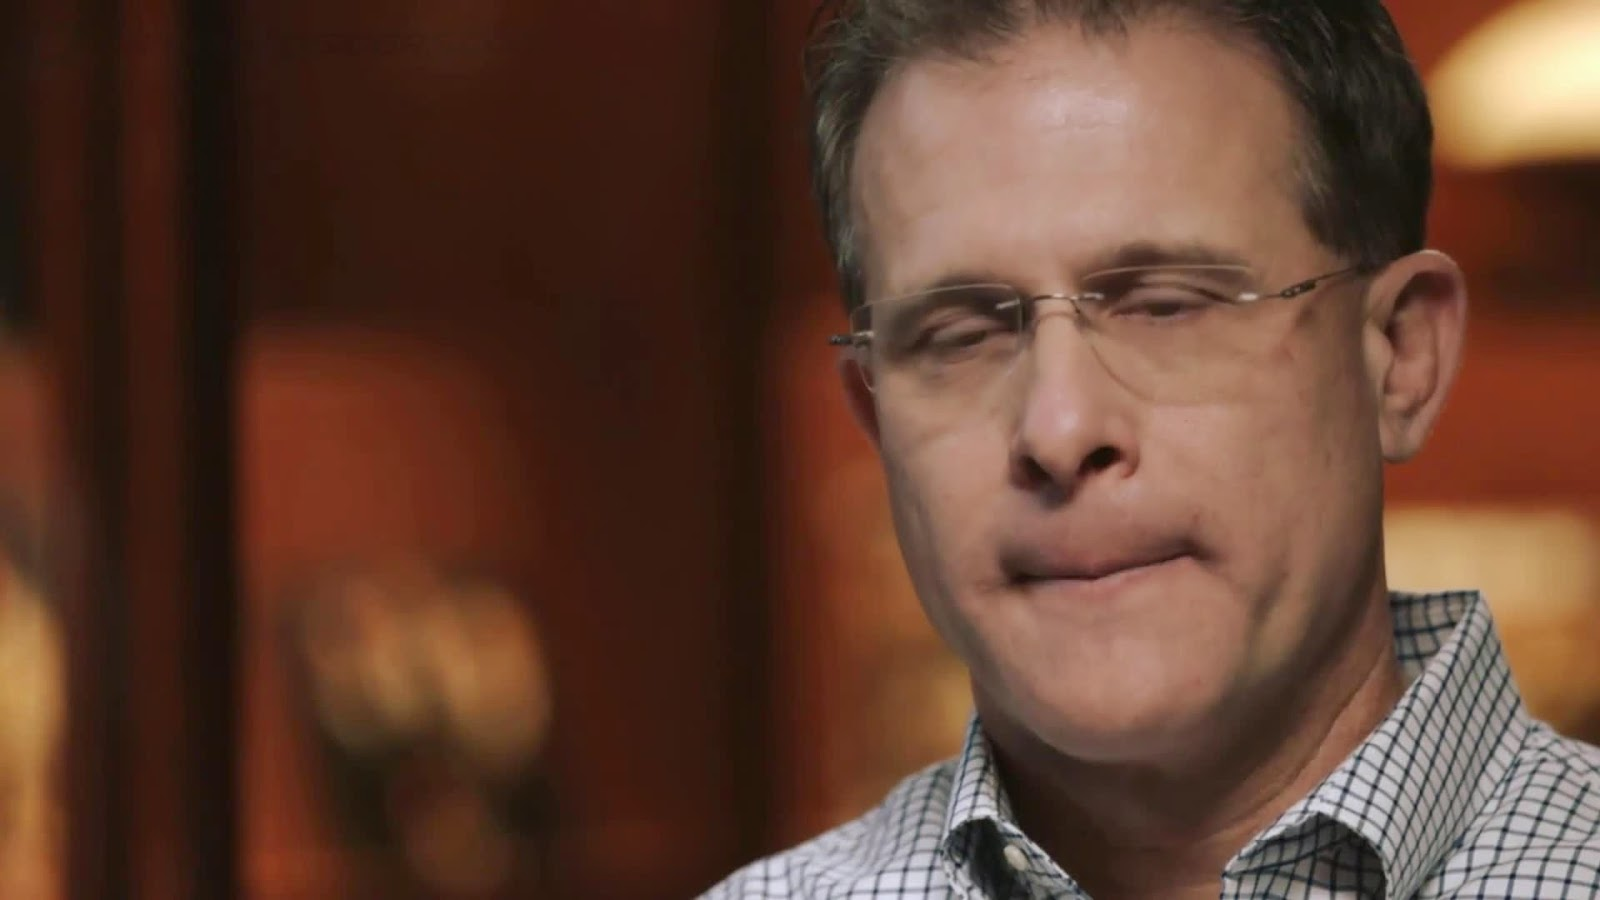 Gus Malzahn apologizes to Air Force vet who was verbally assaulted by Auburn players.